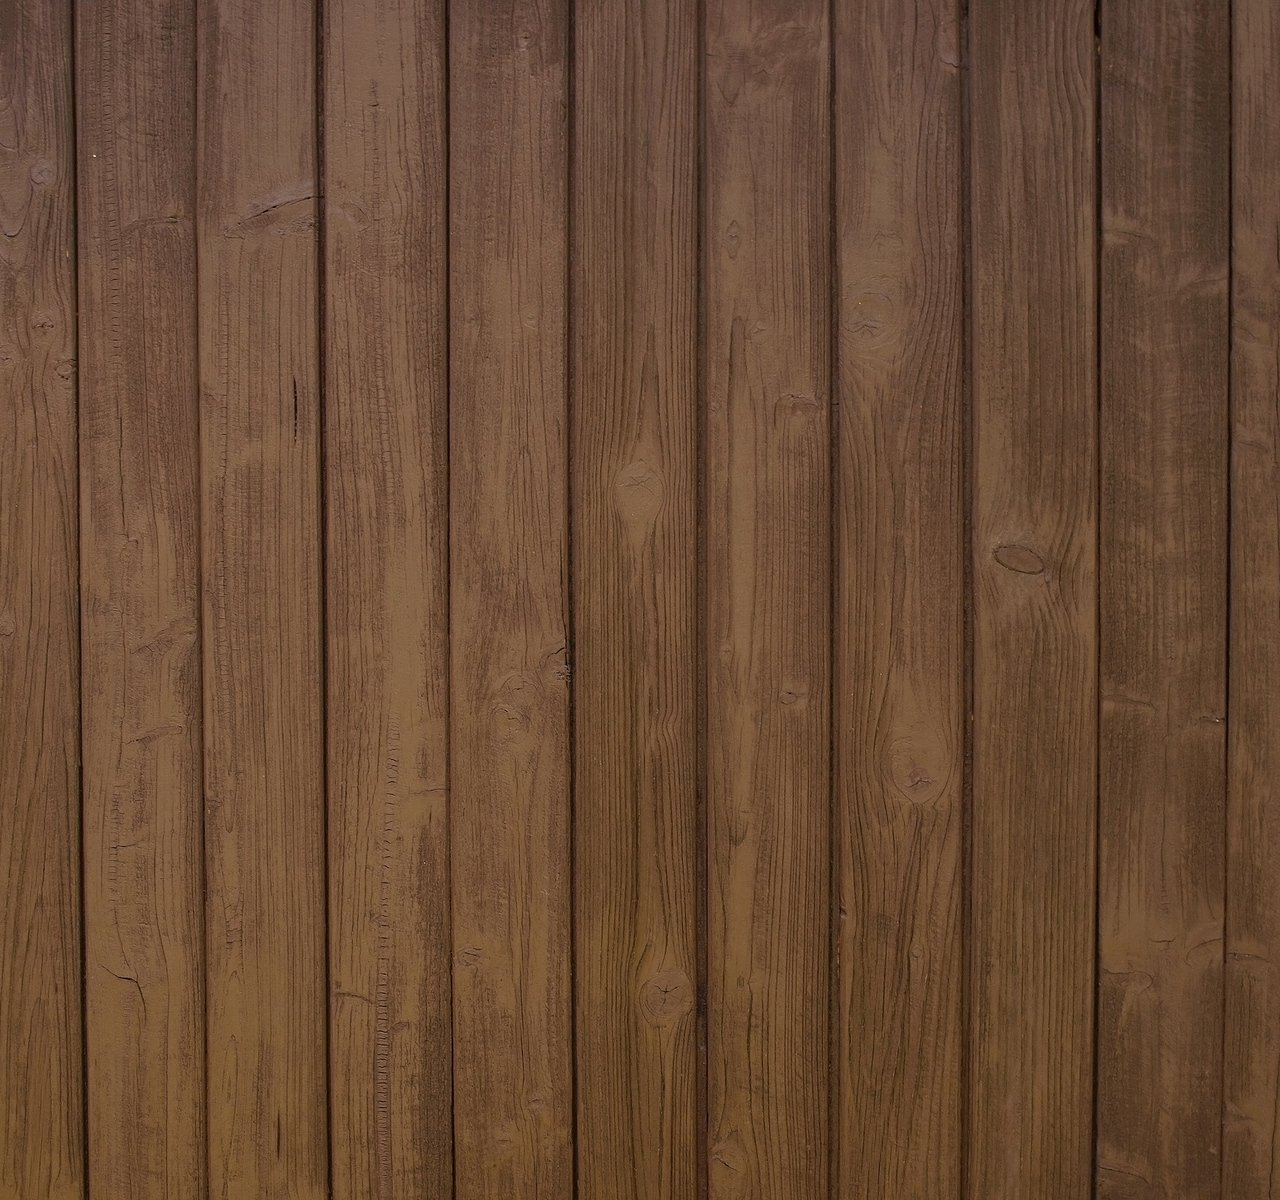 Free wood texture stock photo freeimages